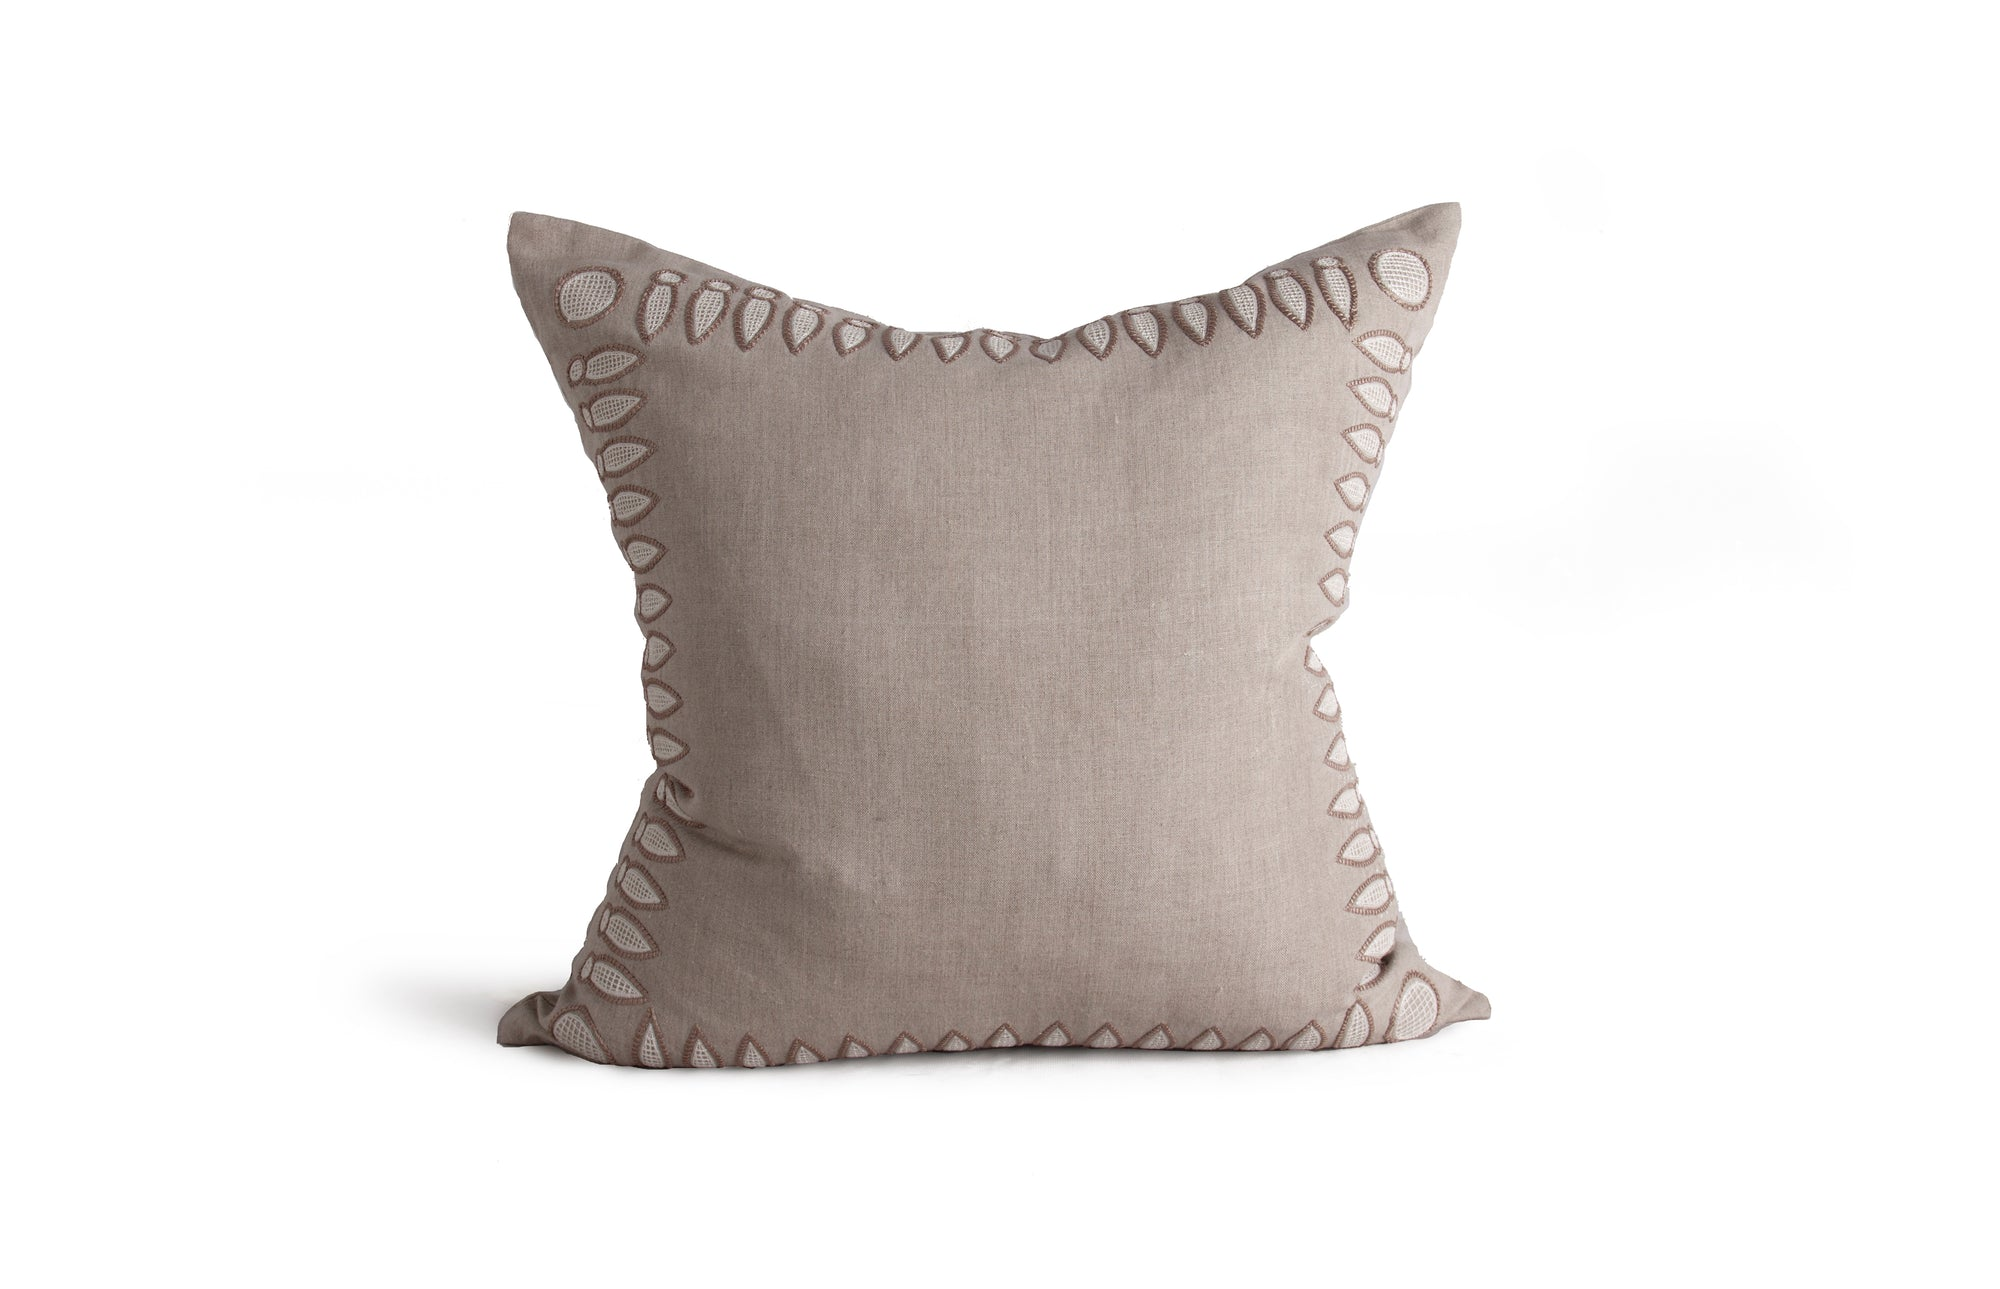 Basilica Pillow - Stone & Cream